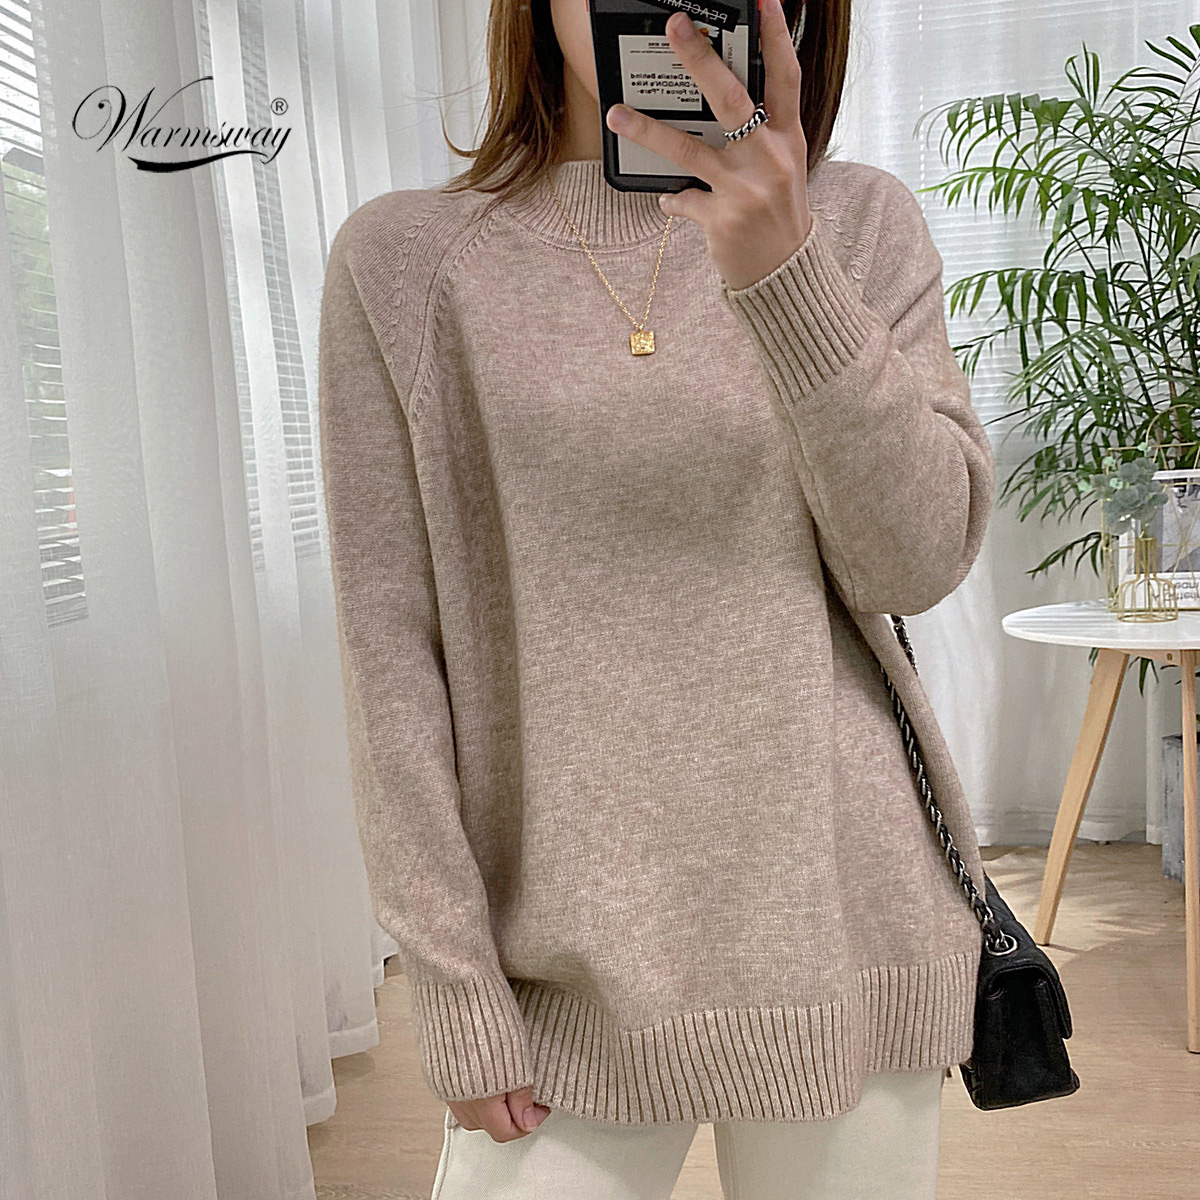 Women Mock Neck Pullovers Sweater High Quality Oversized Jumper Split Fall Winter Clothes Beige Purple Green 8 Colors  C-232